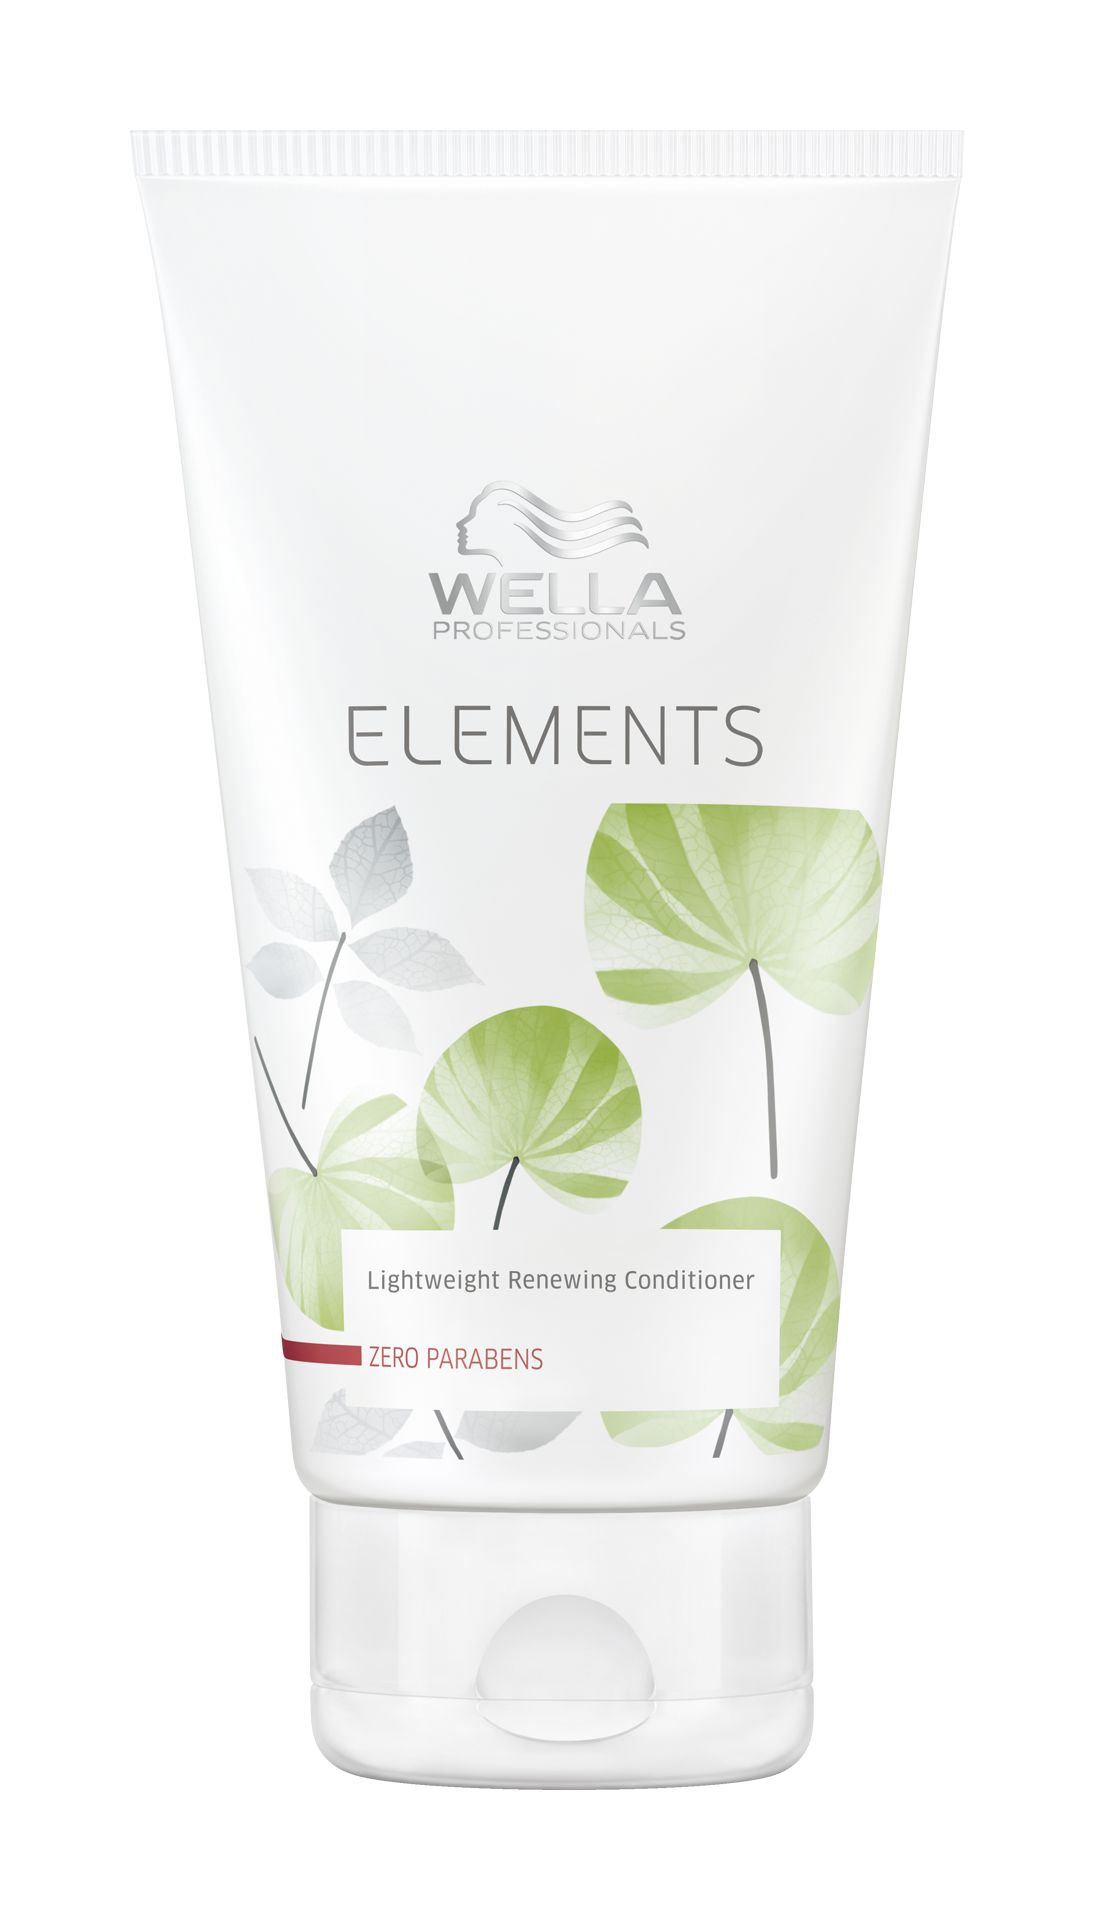 WELLA Elements Lightweight Renewing Conditioner Лёгкий обновляющий бальзам (200 ml) 81466031/81588000